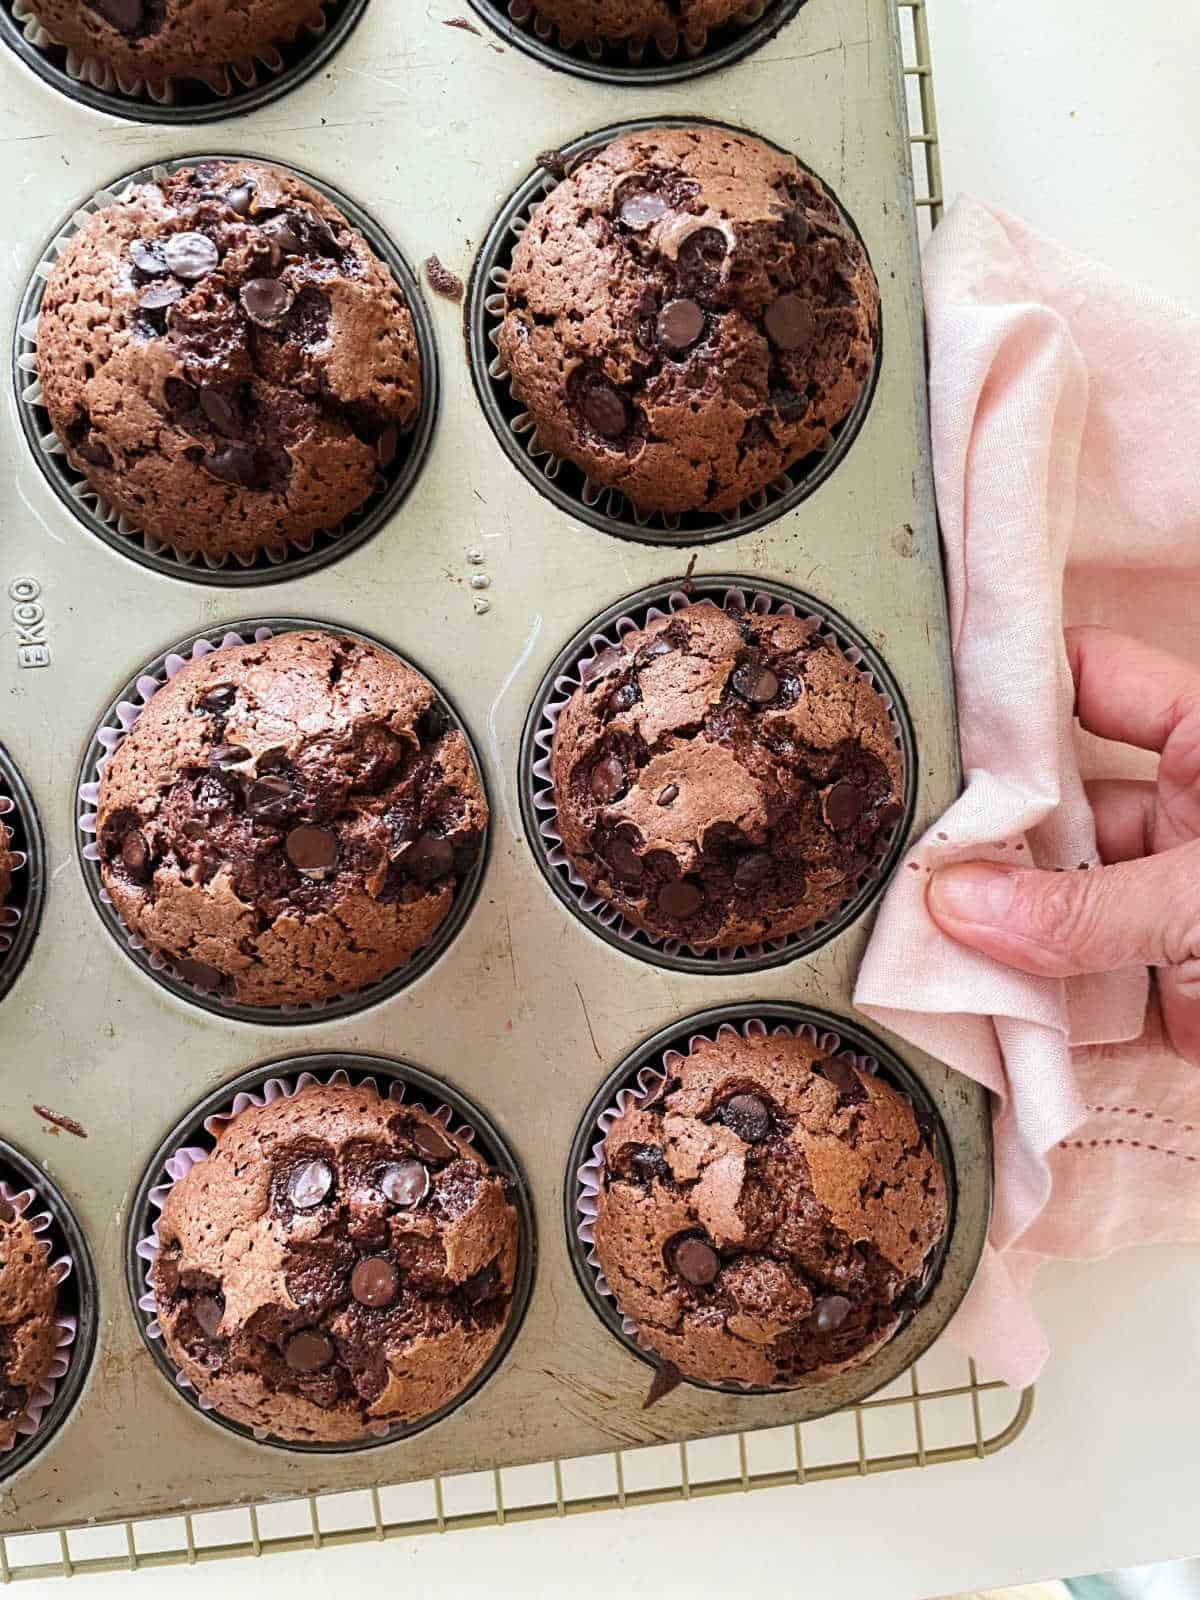 Baked chocolate muffins in metal pan, hand holding pink napkin